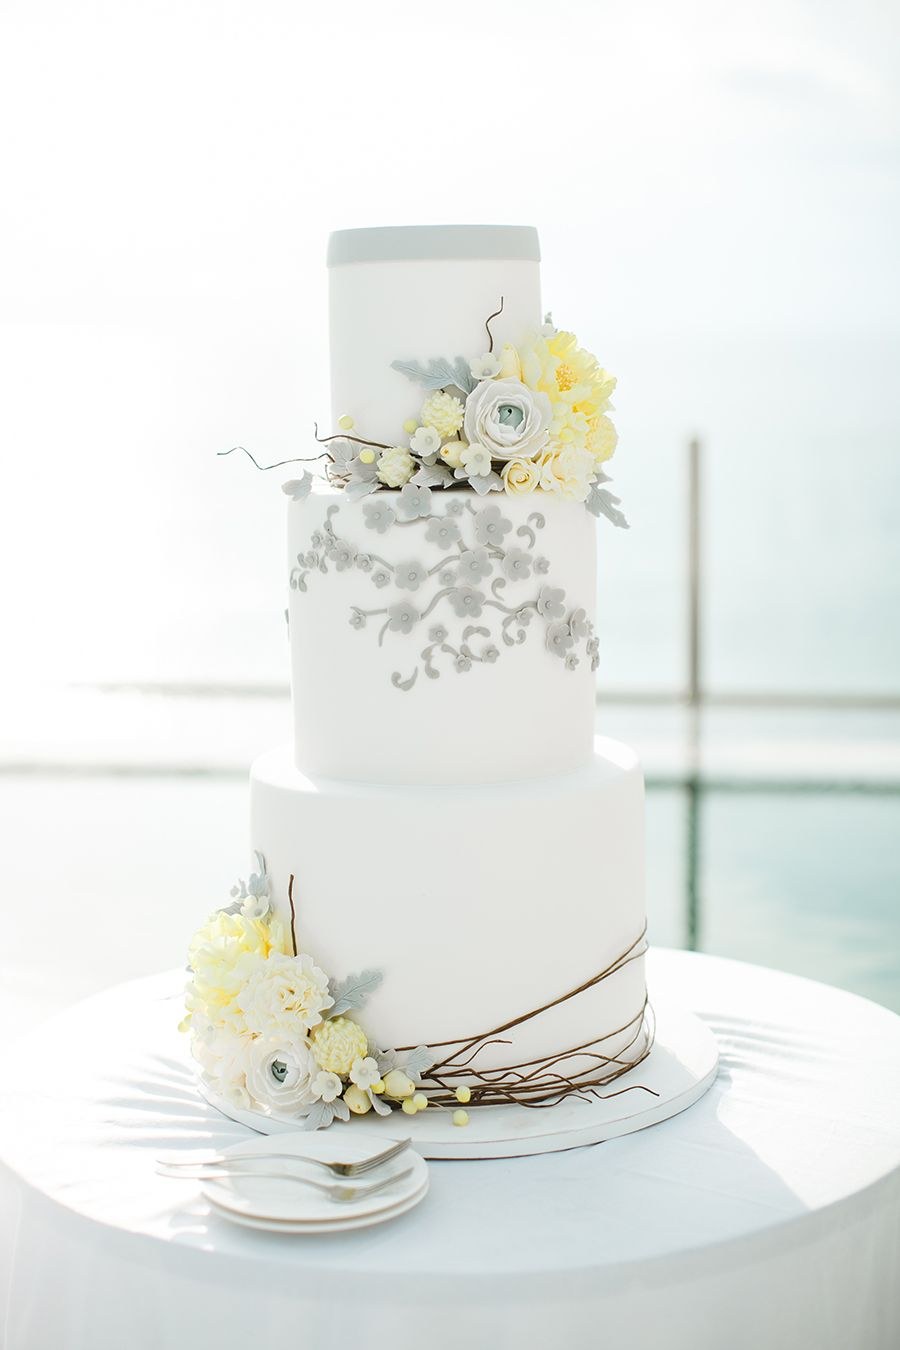 Grey White And Yellow Tiered Wedding Cake With Florals Magical Bali On